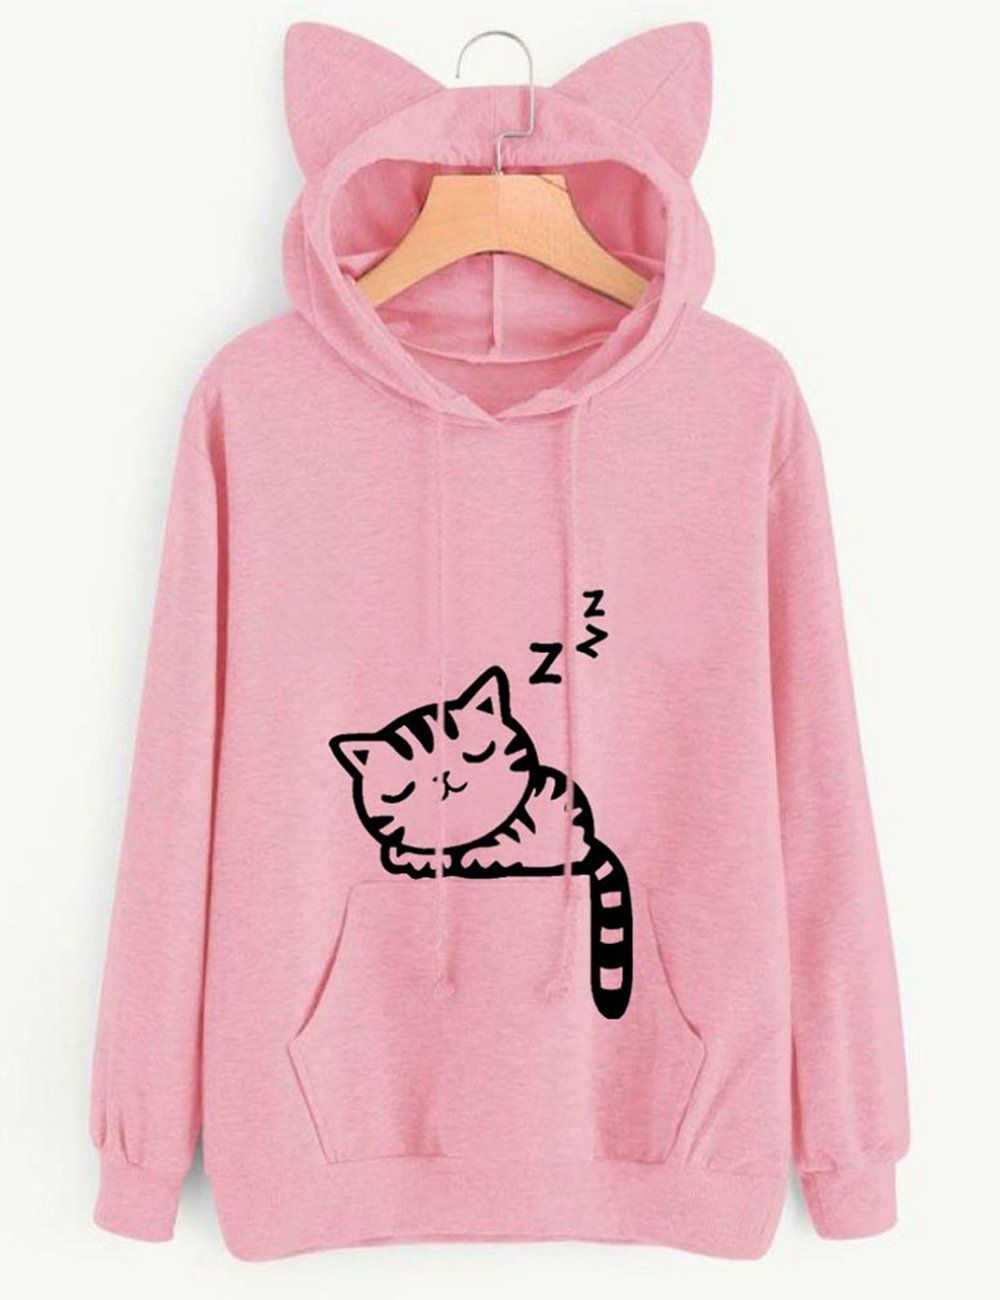 08bcde71e99 KEYEE Cute Cat Sweatshirt Women Teen Girls Cotton Hoodie Sweater Pullover  Tops with Pocket L Pink   Click image for more details.